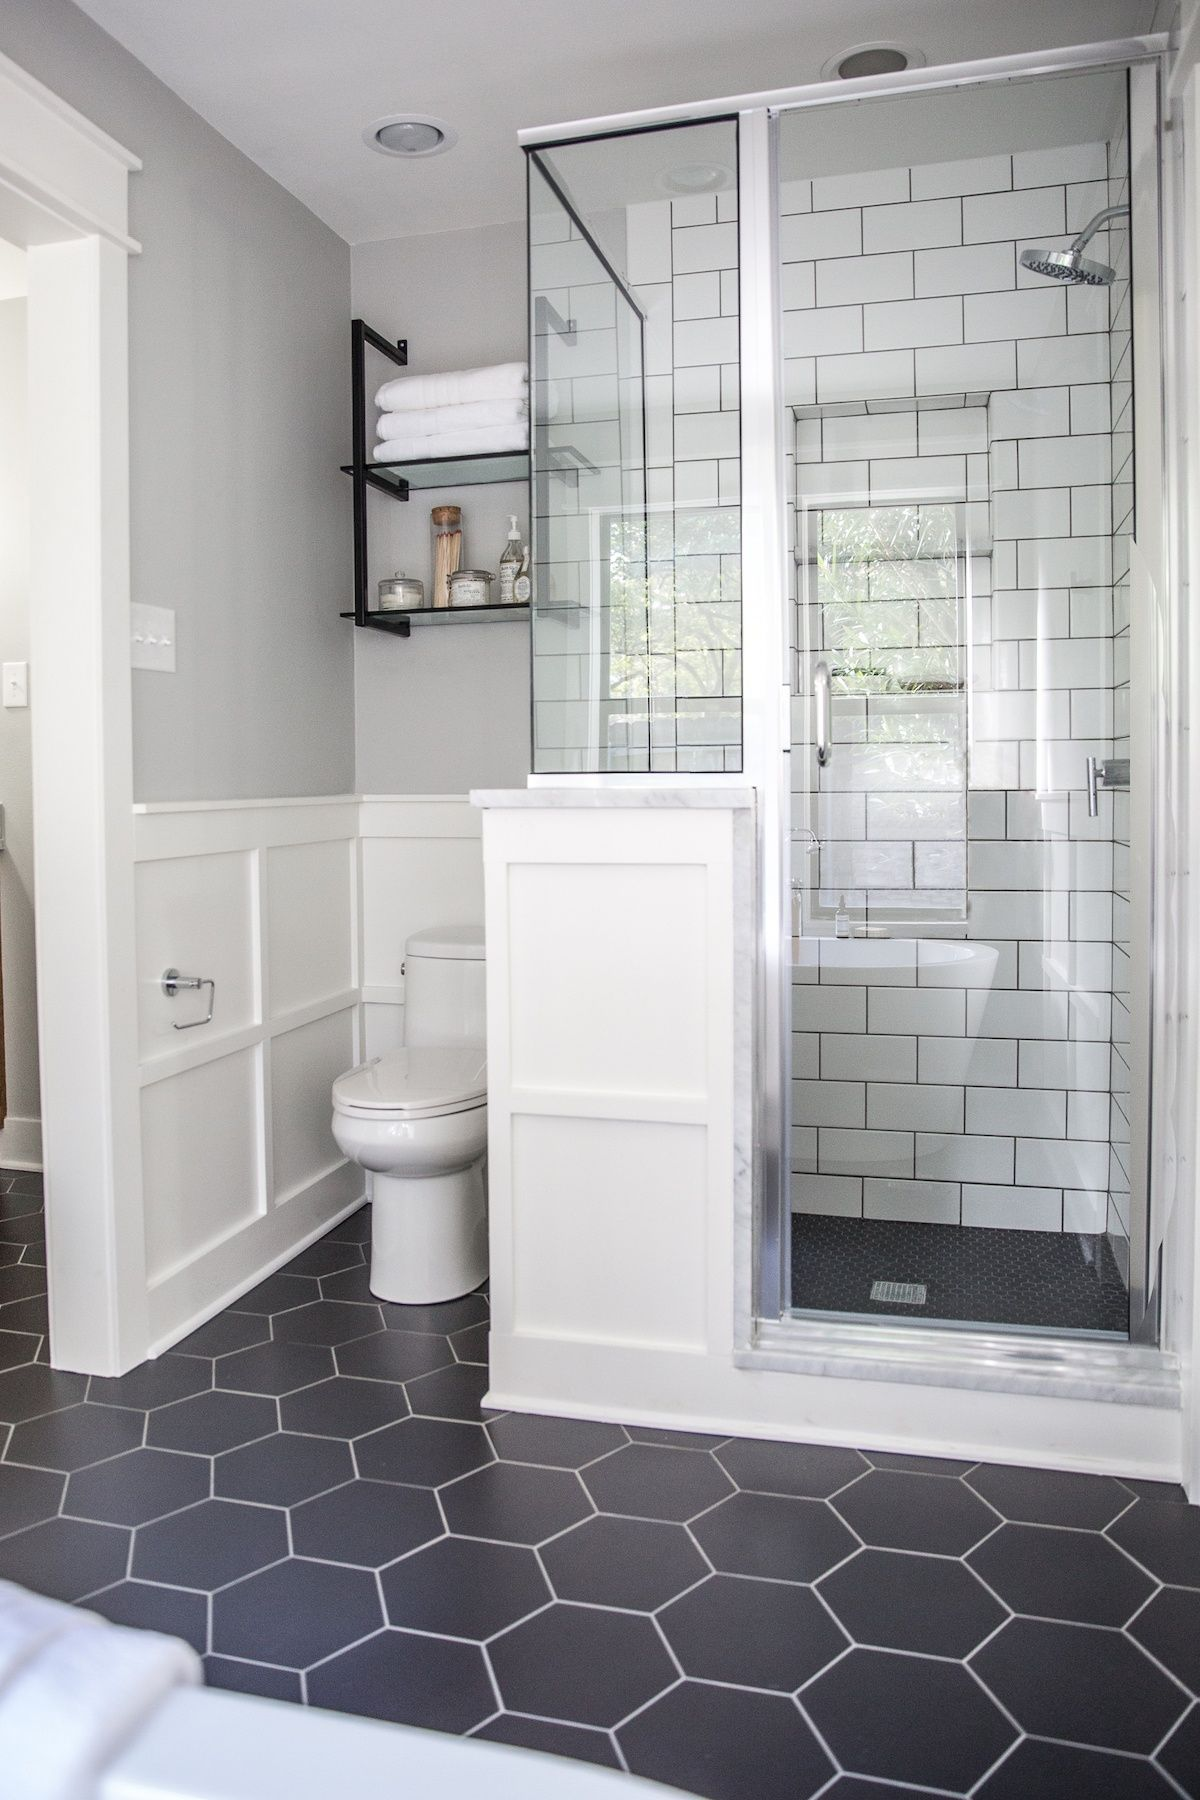 Kleine ensuite badezimmerdesignideen we used large hexagonal flooring throughout the whole bathroom i